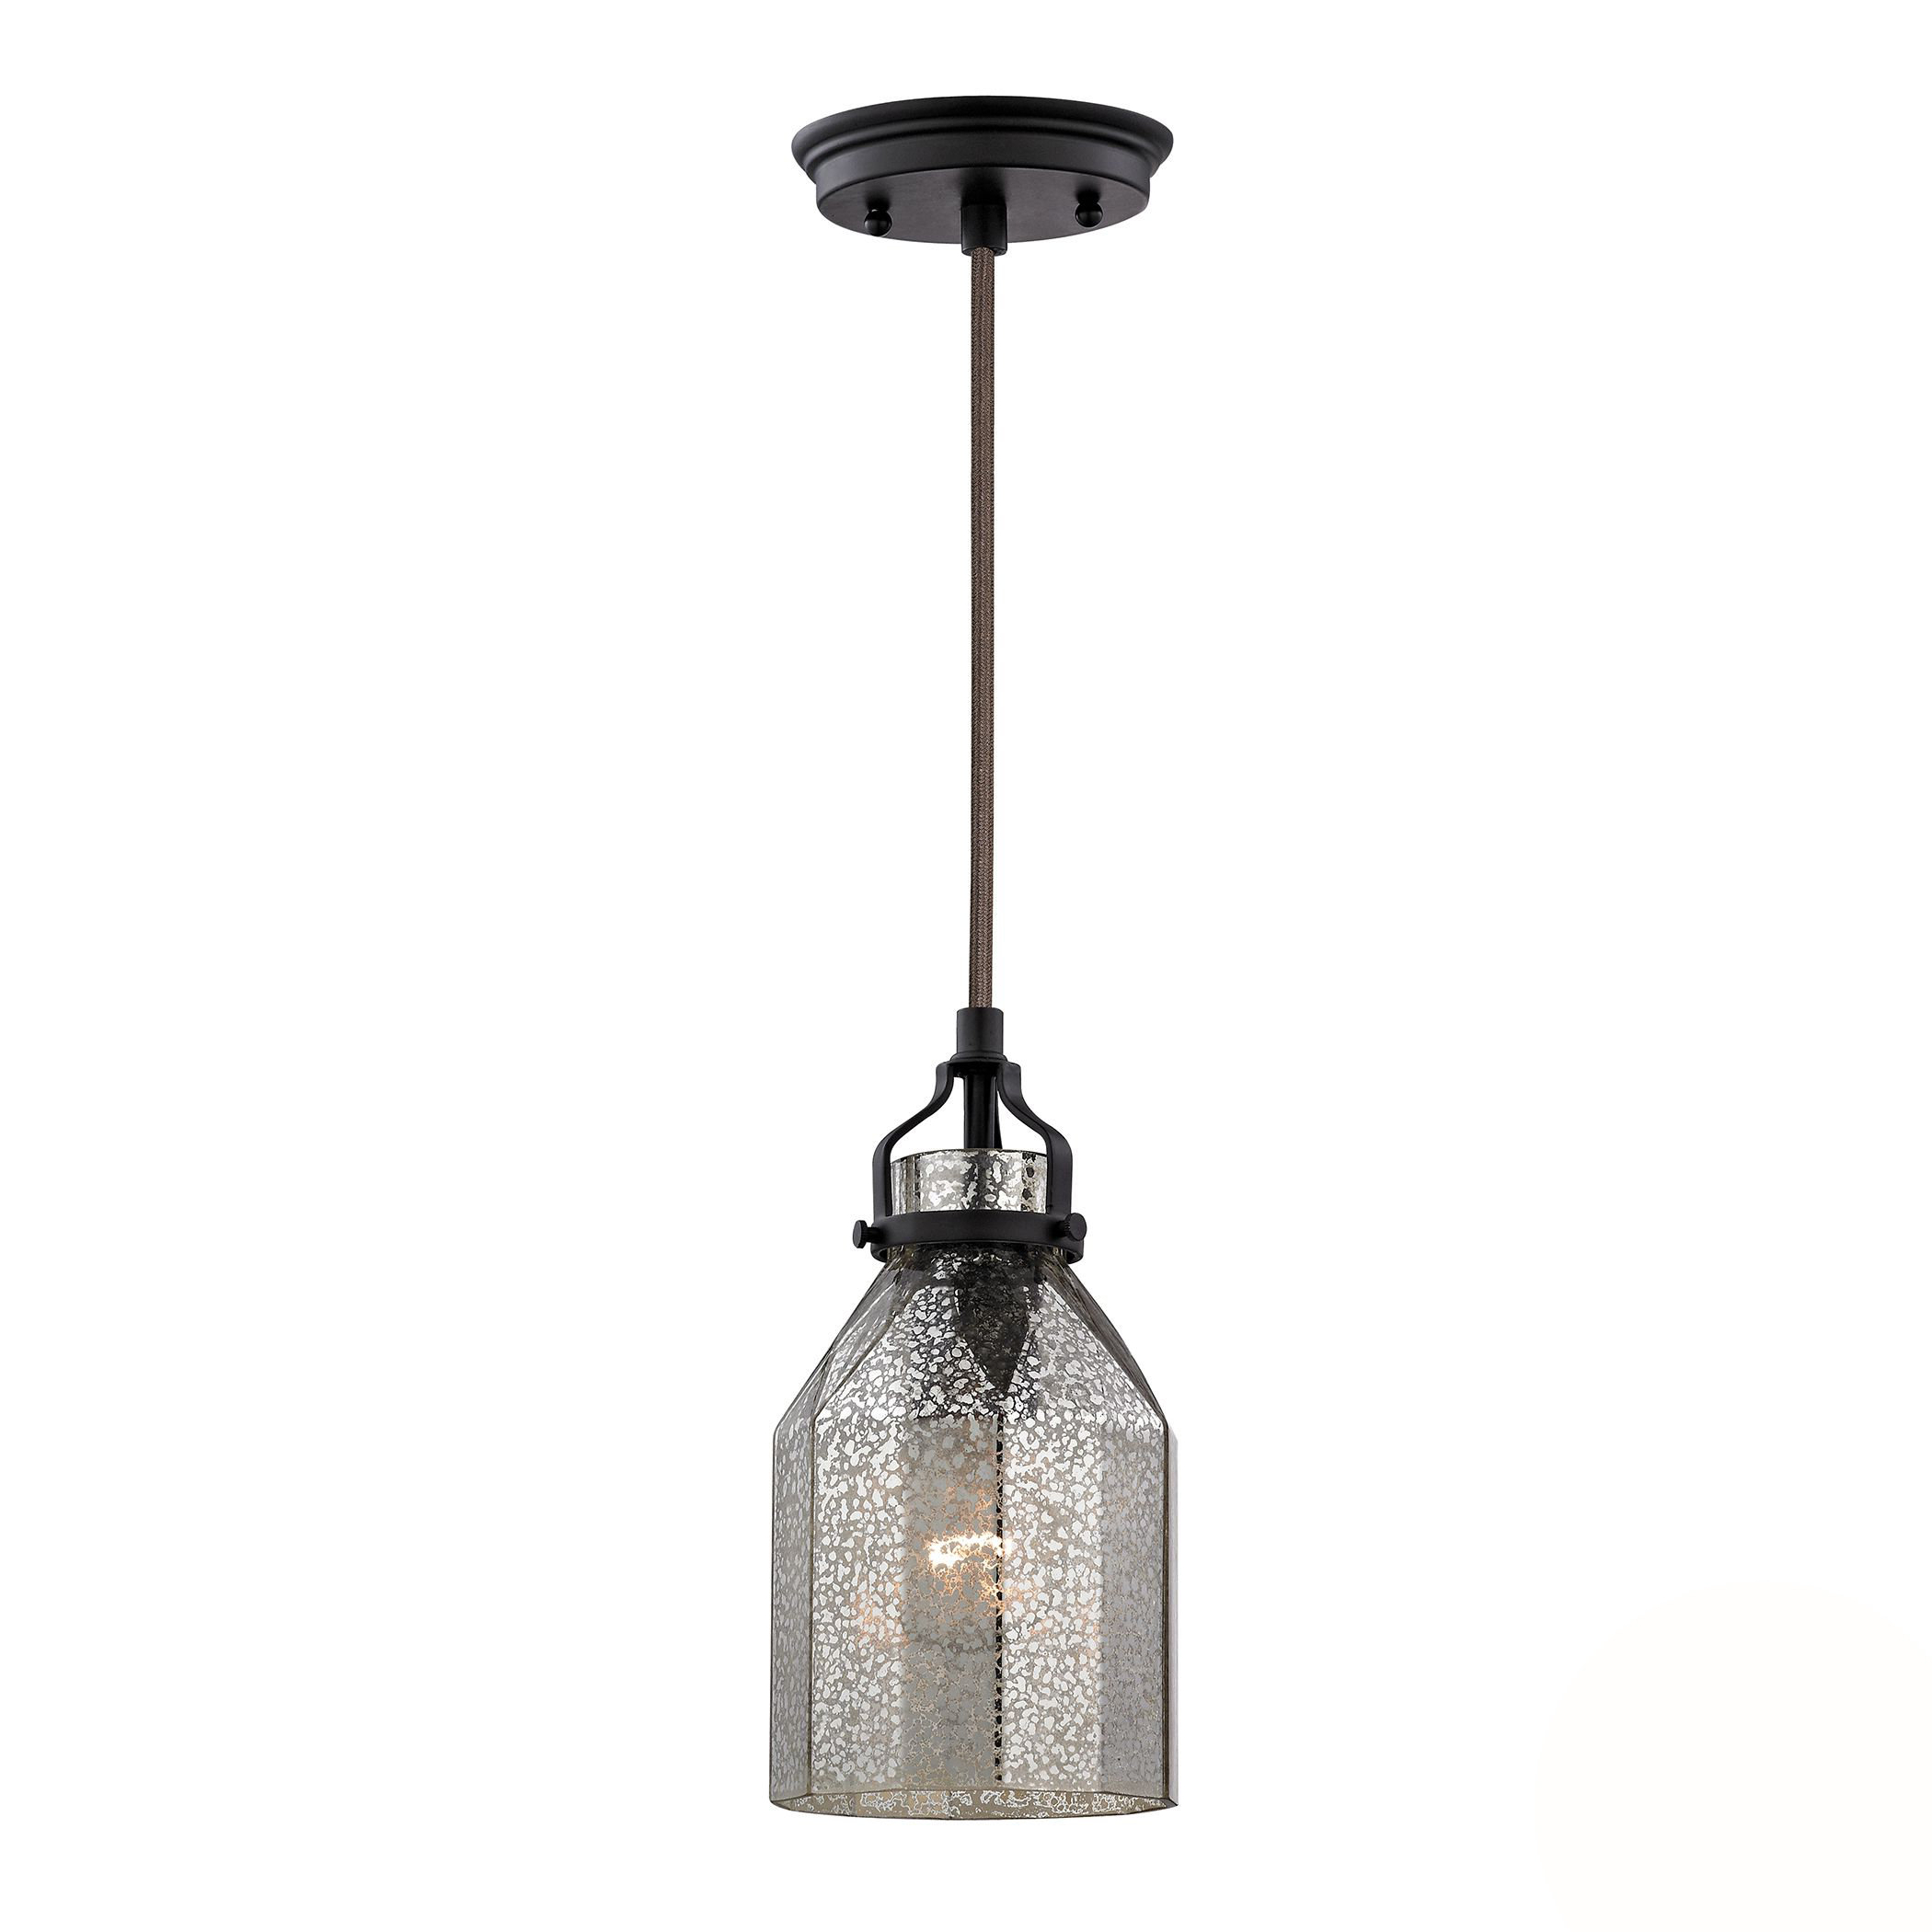 Moris 1 Light Cone Pendants With Favorite Orofino 1 Light Cone Pendant (View 22 of 25)